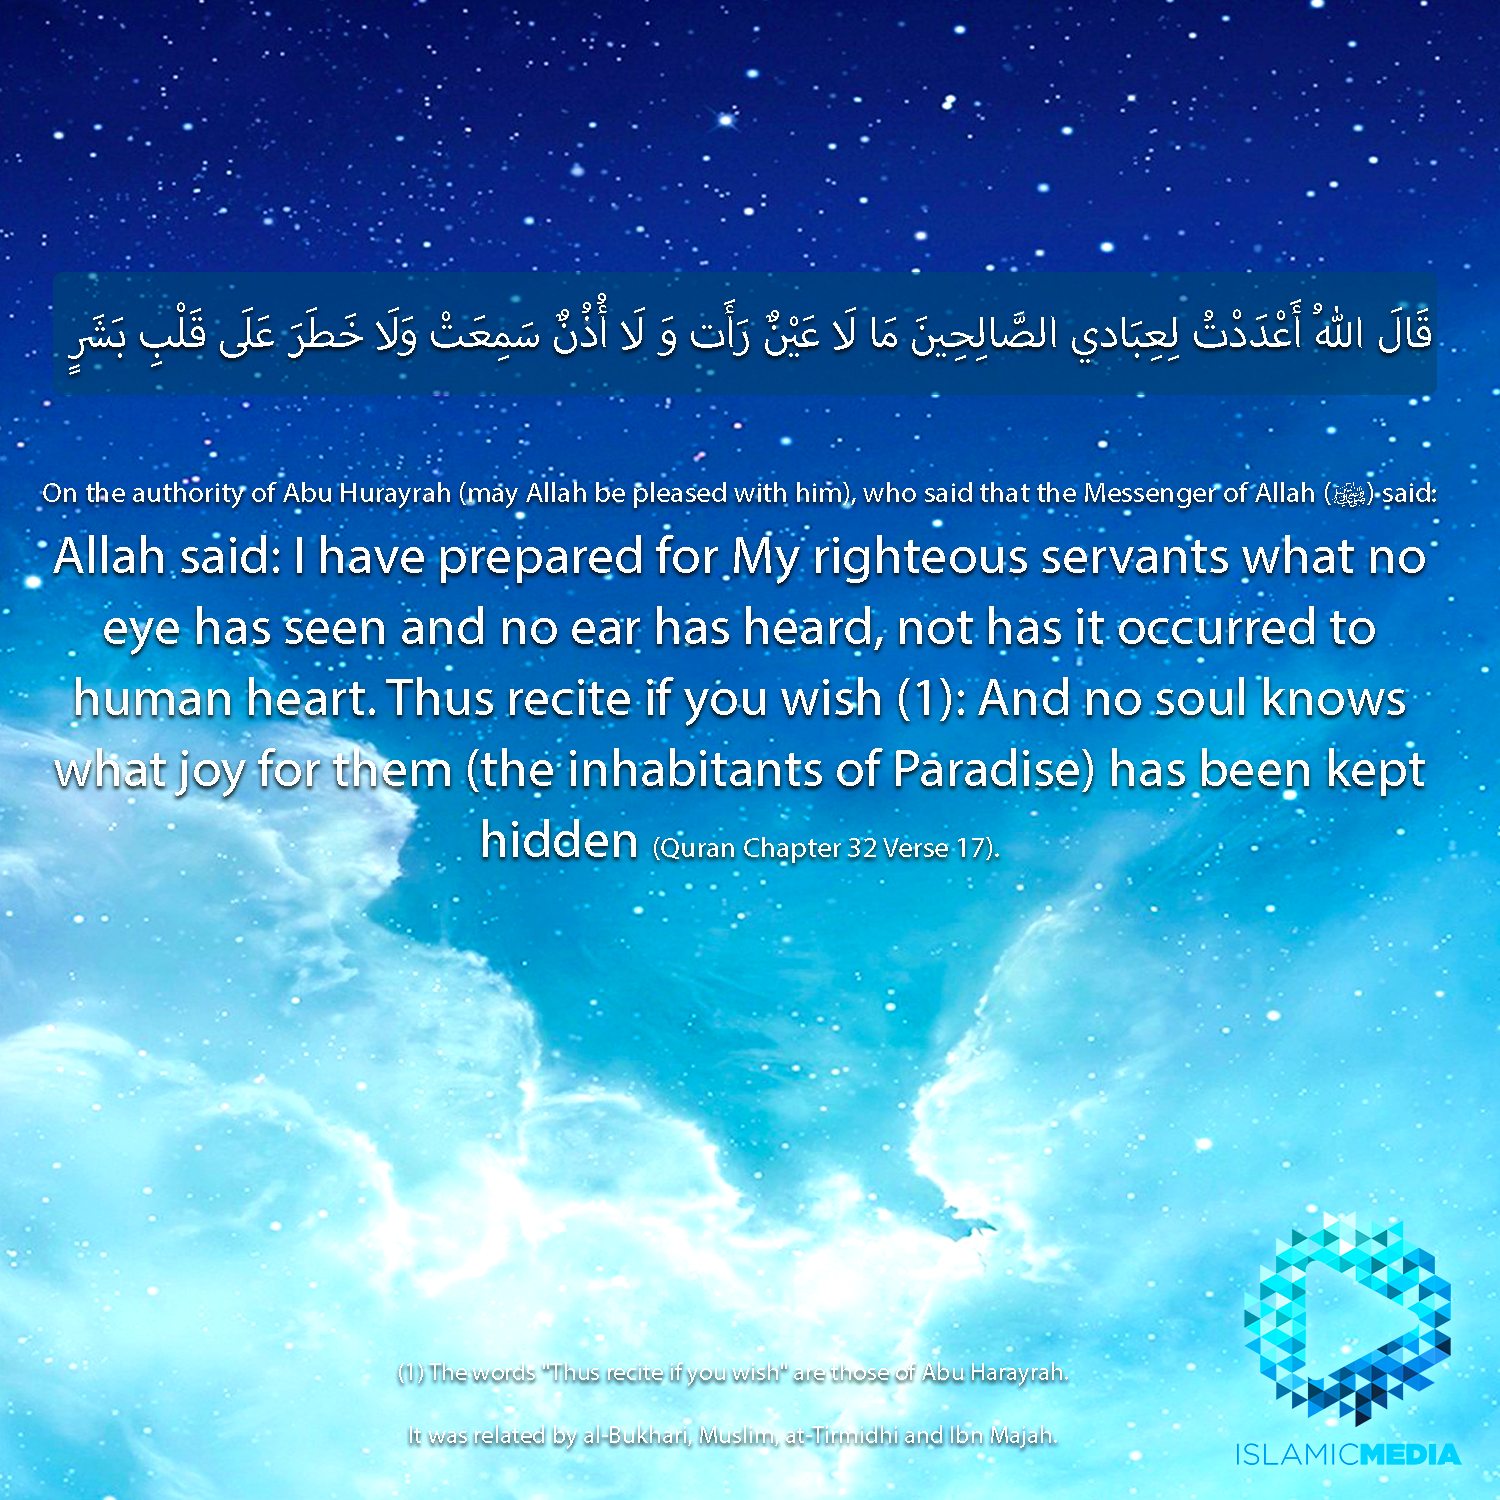 Allah said: I have prepared for My righteous servants what no eye